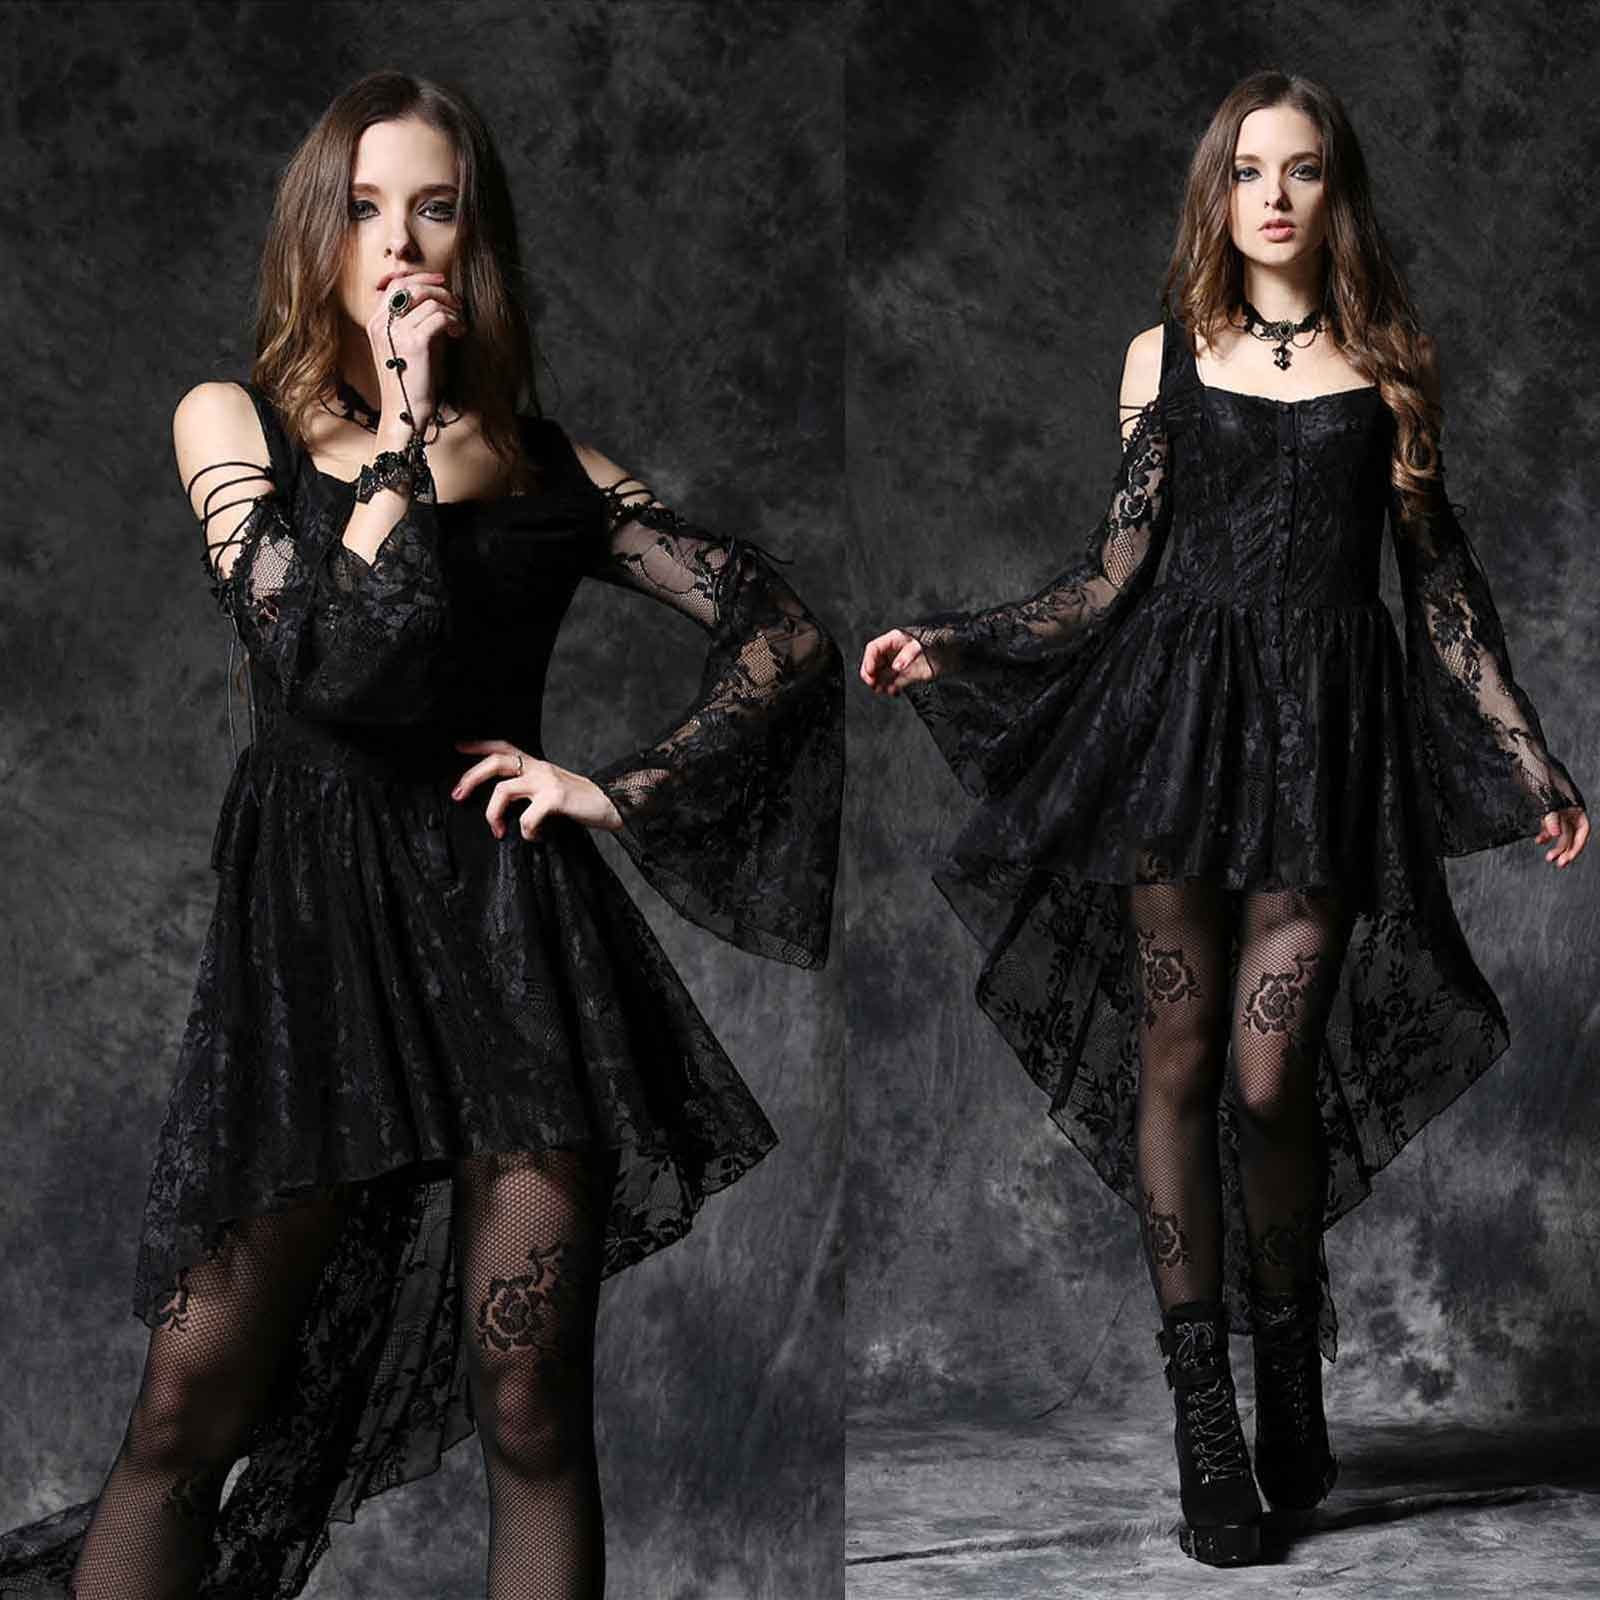 details about dark in love gothic dress black with lots of lace black lady  dovetail dress- show original title